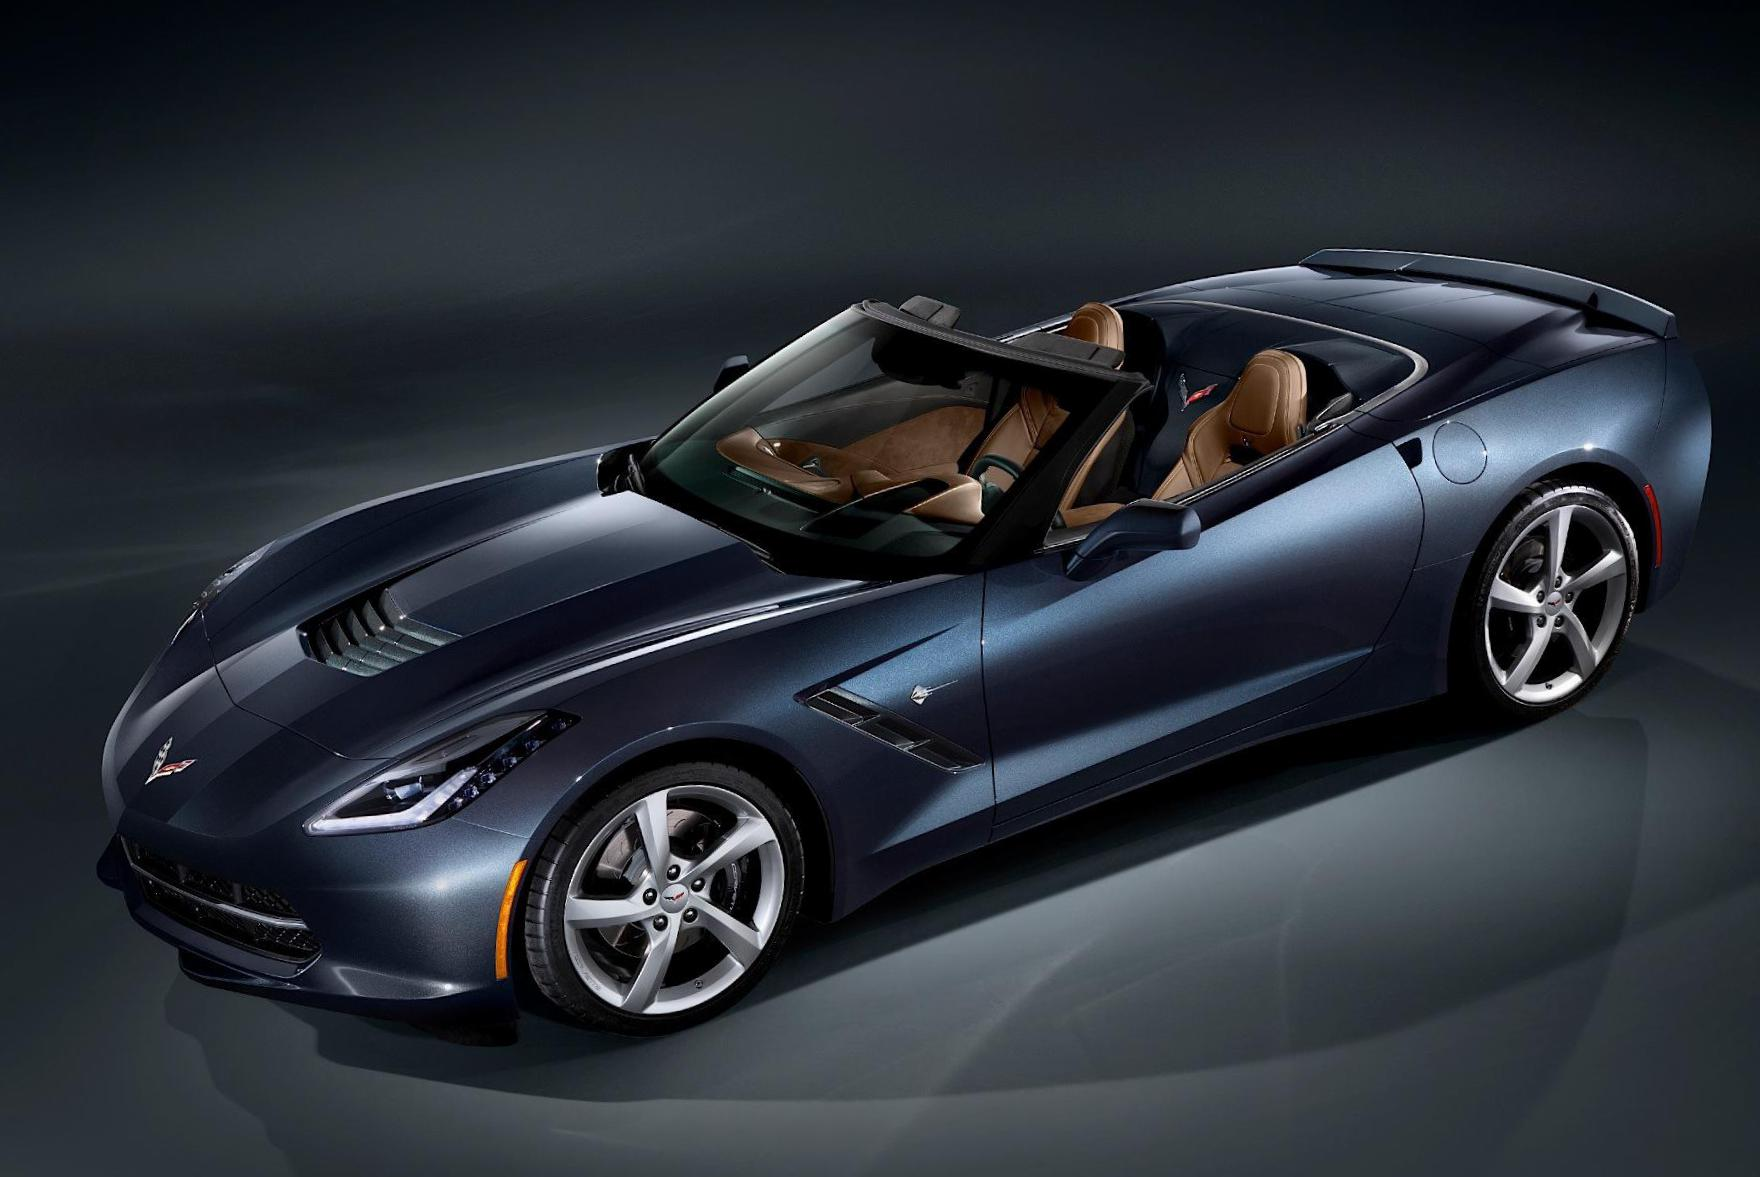 Corvette Stingray Convertible Chevrolet Specifications minivan